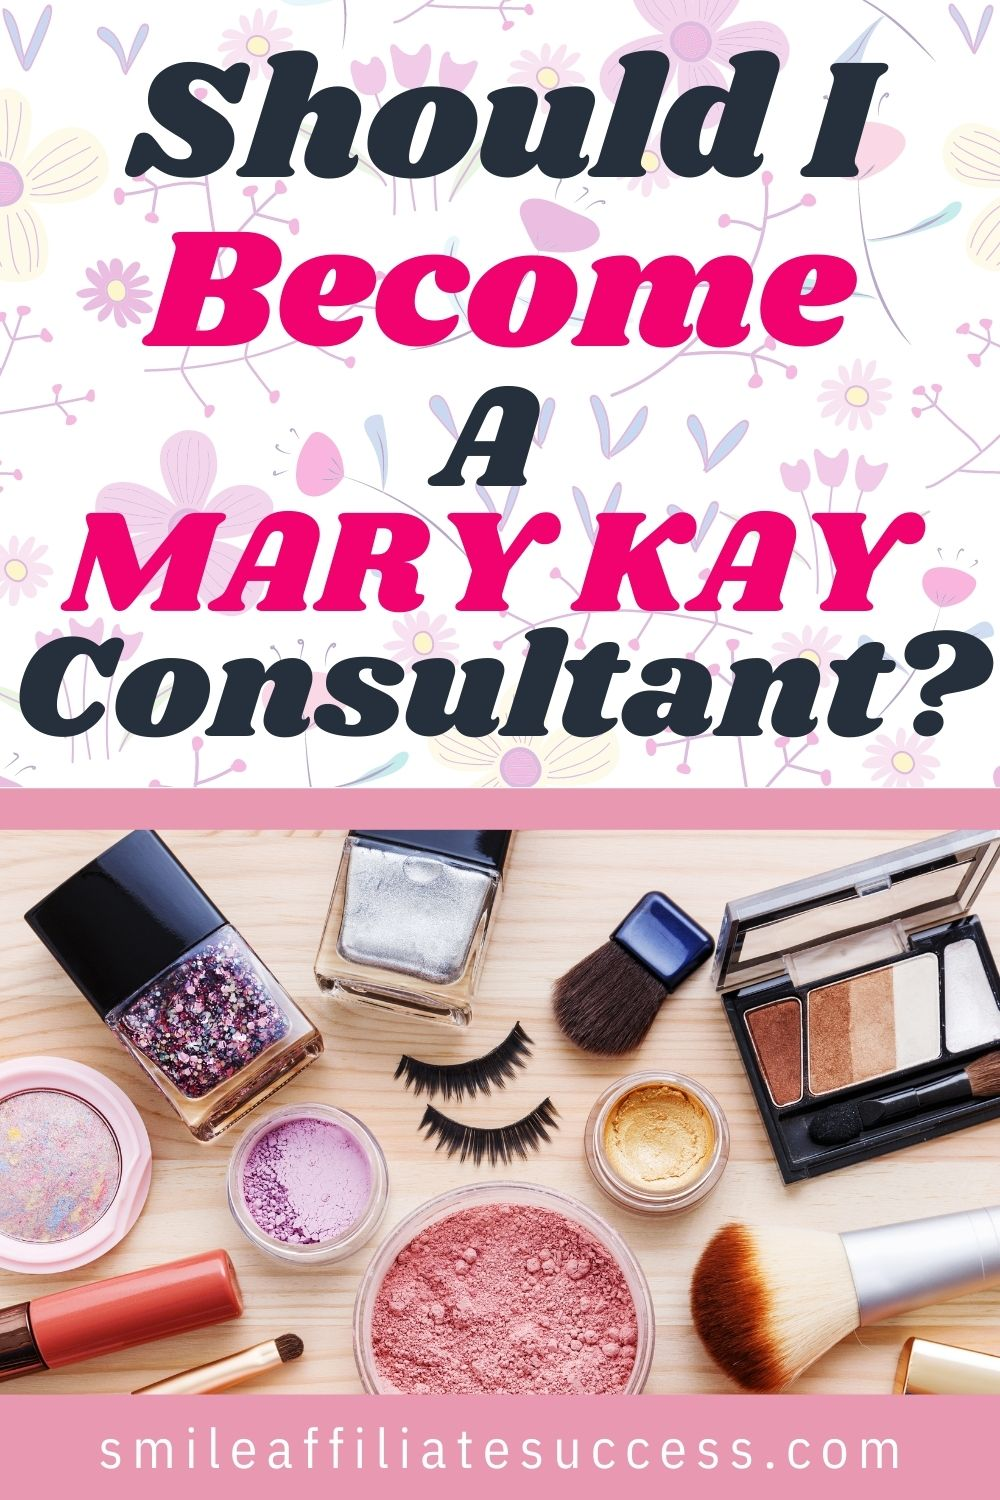 Should I Become A Mary Kay Consultant?